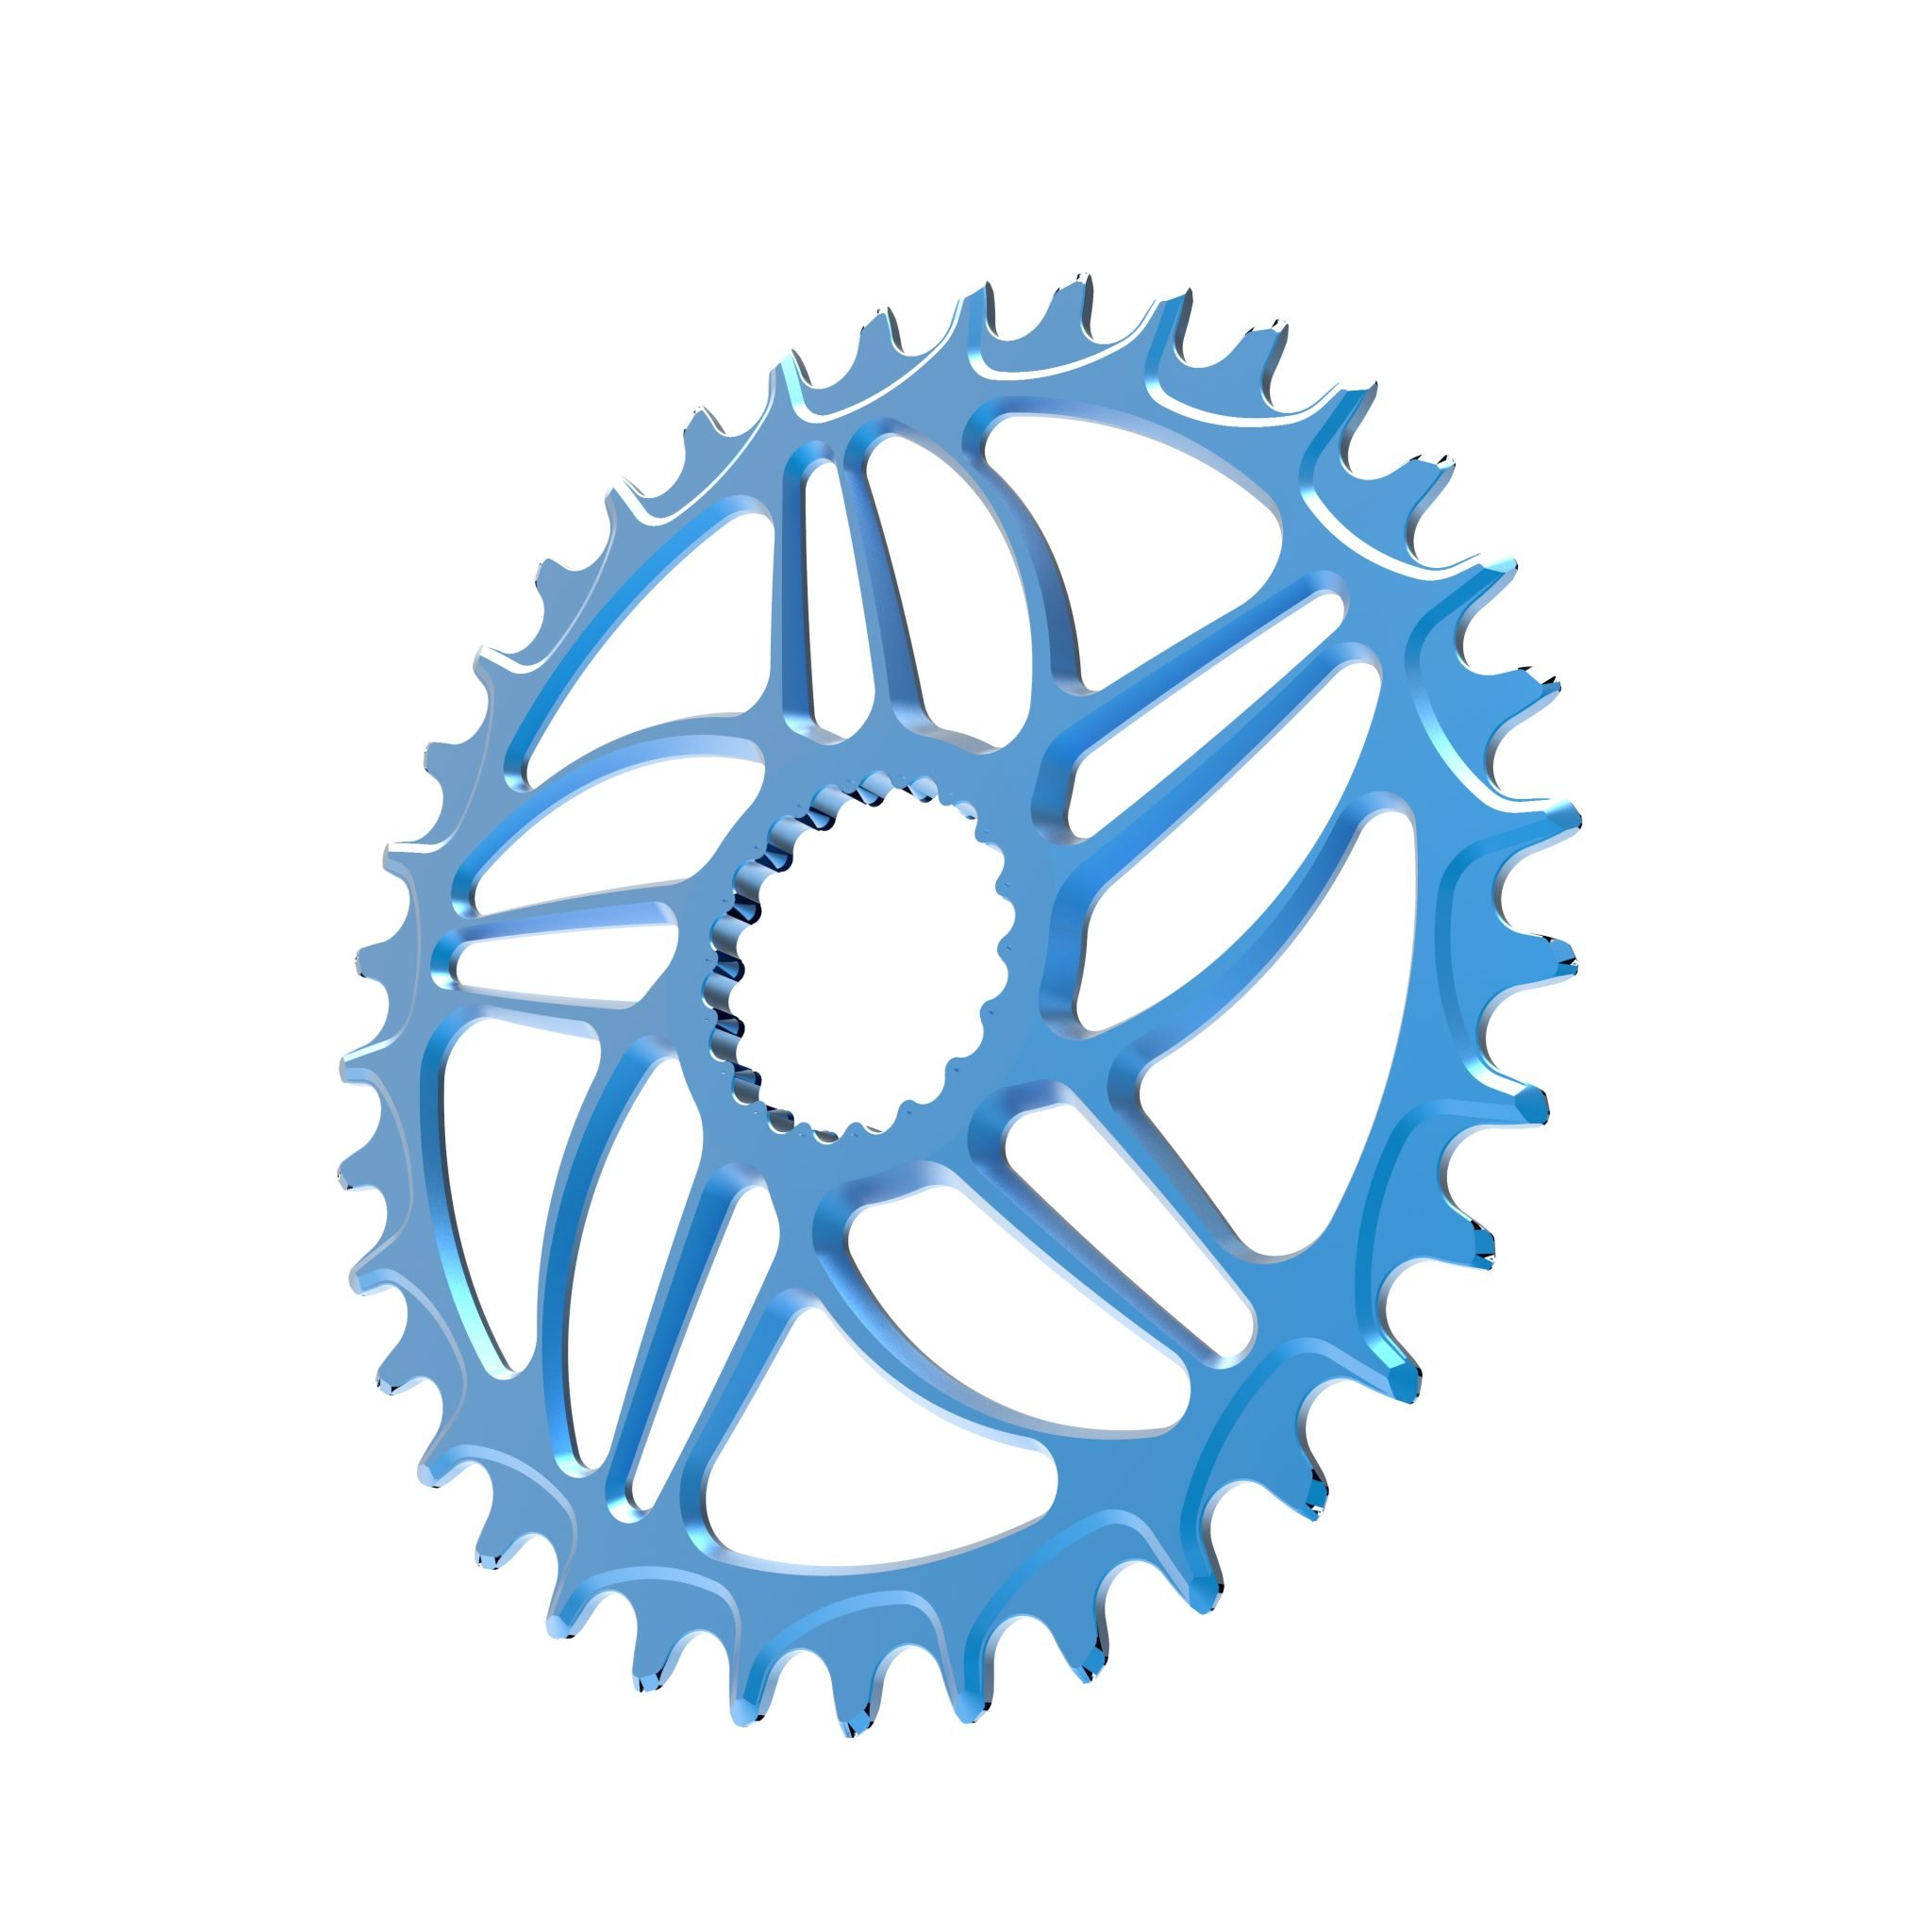 36T_R_Cannondale_BOOST_Blue.394